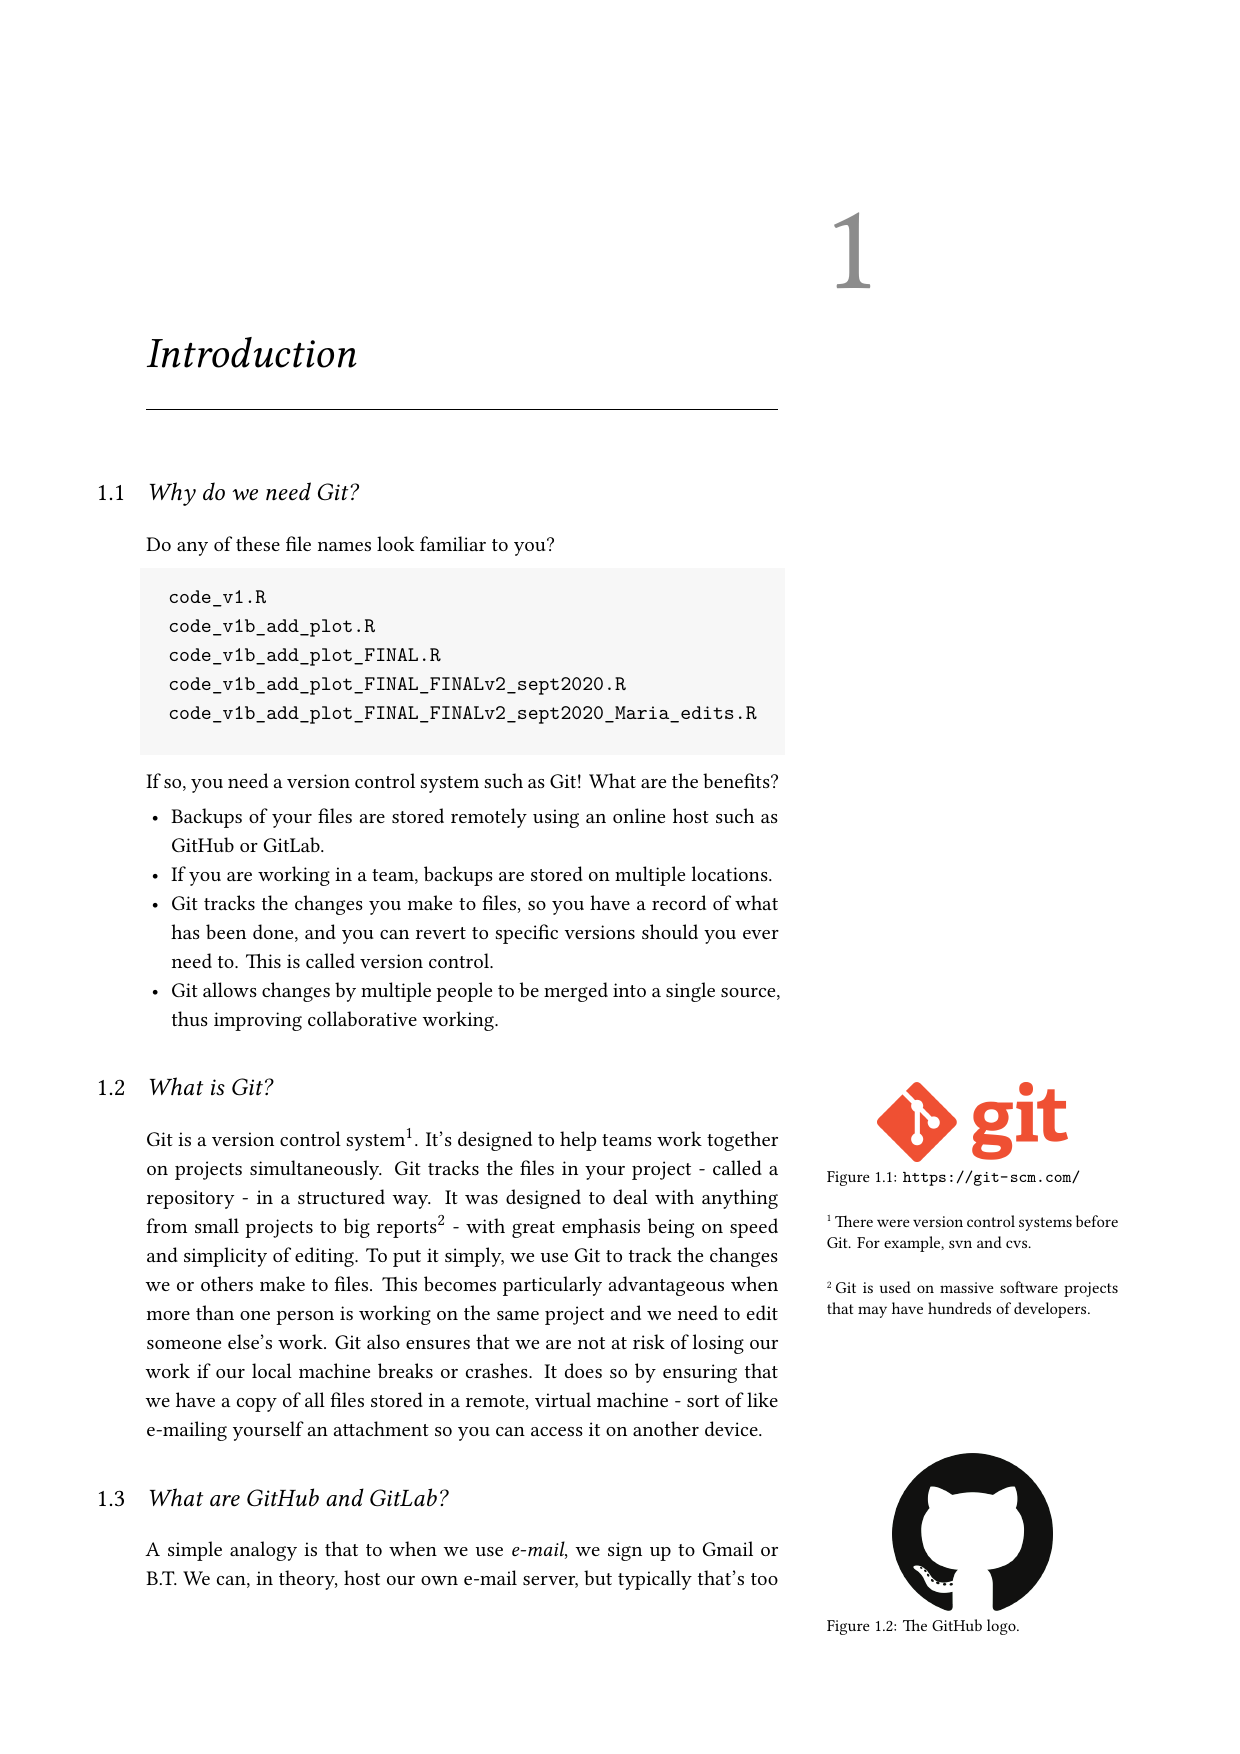 Example course material for 'Git for Me